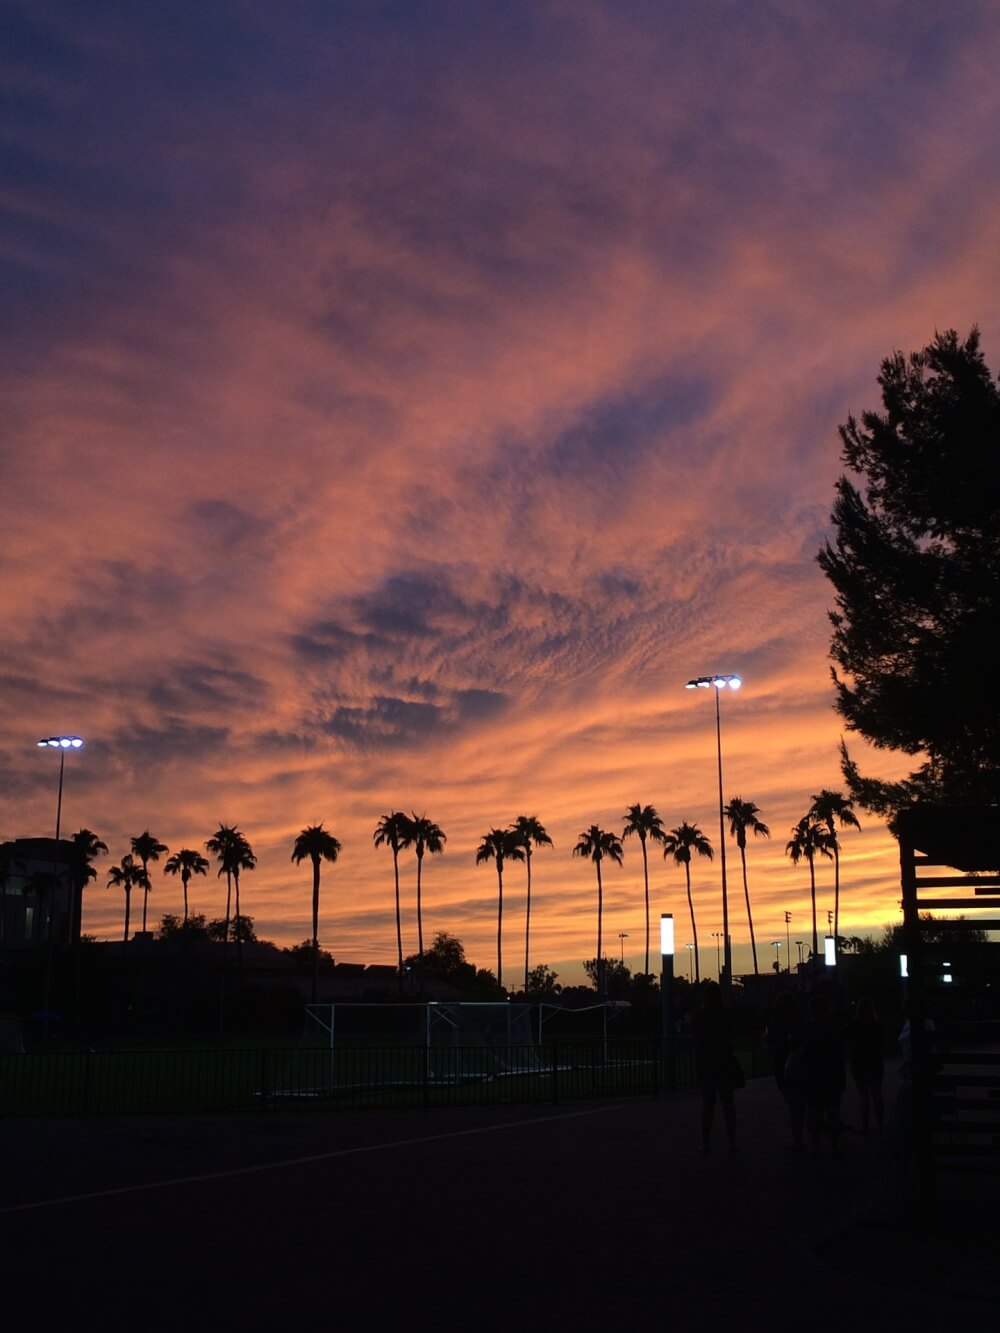 A view of the Phoenix sky at dusk, with streetlights and palm trees and a convergence of lurid clouds.